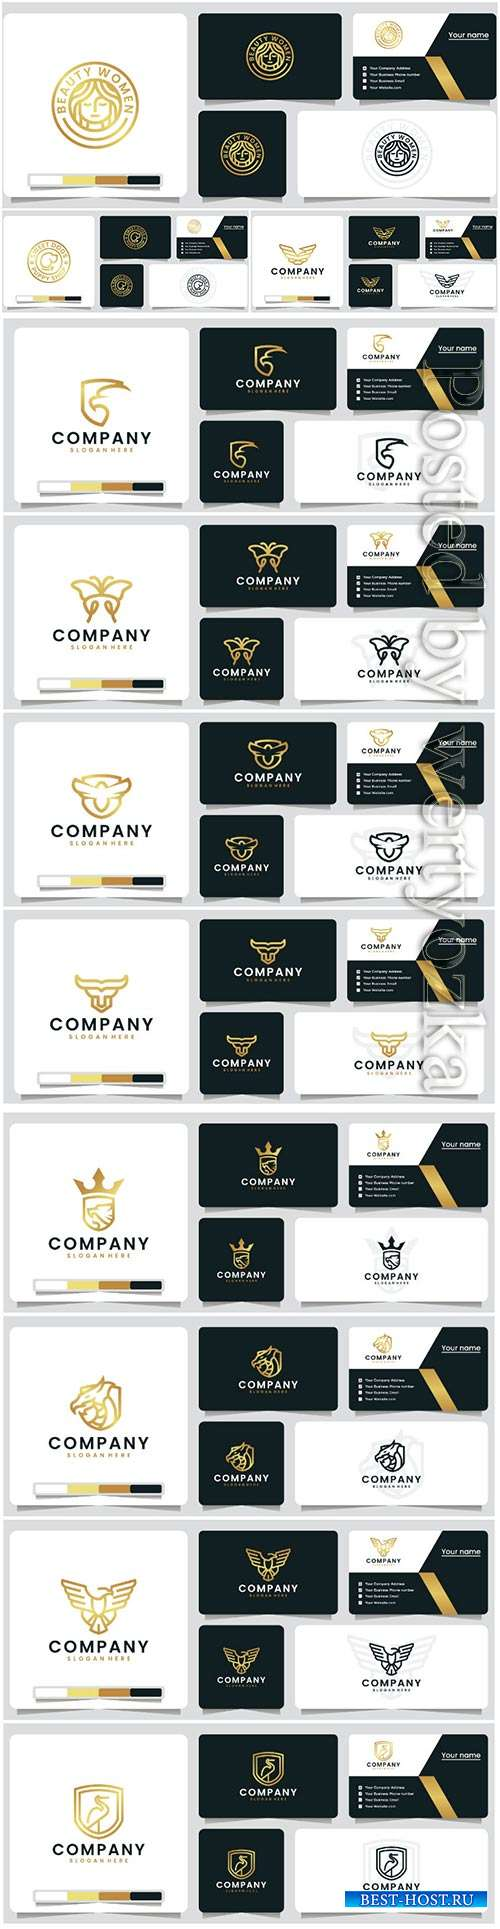 Golden color luxury logo vector design template